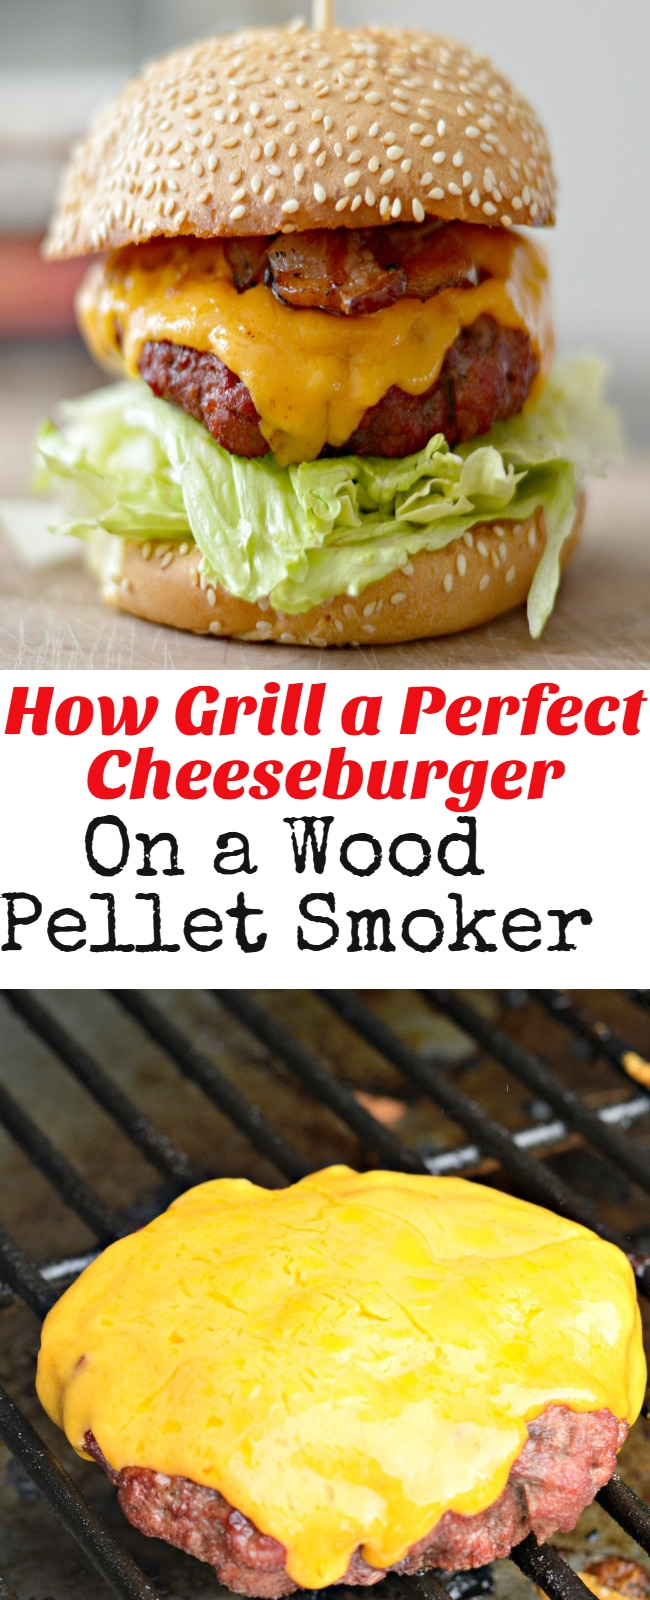 Keep reading to learn how to grill a perfect, smoke-flavored cheeseburger on a wood pellet smoker.